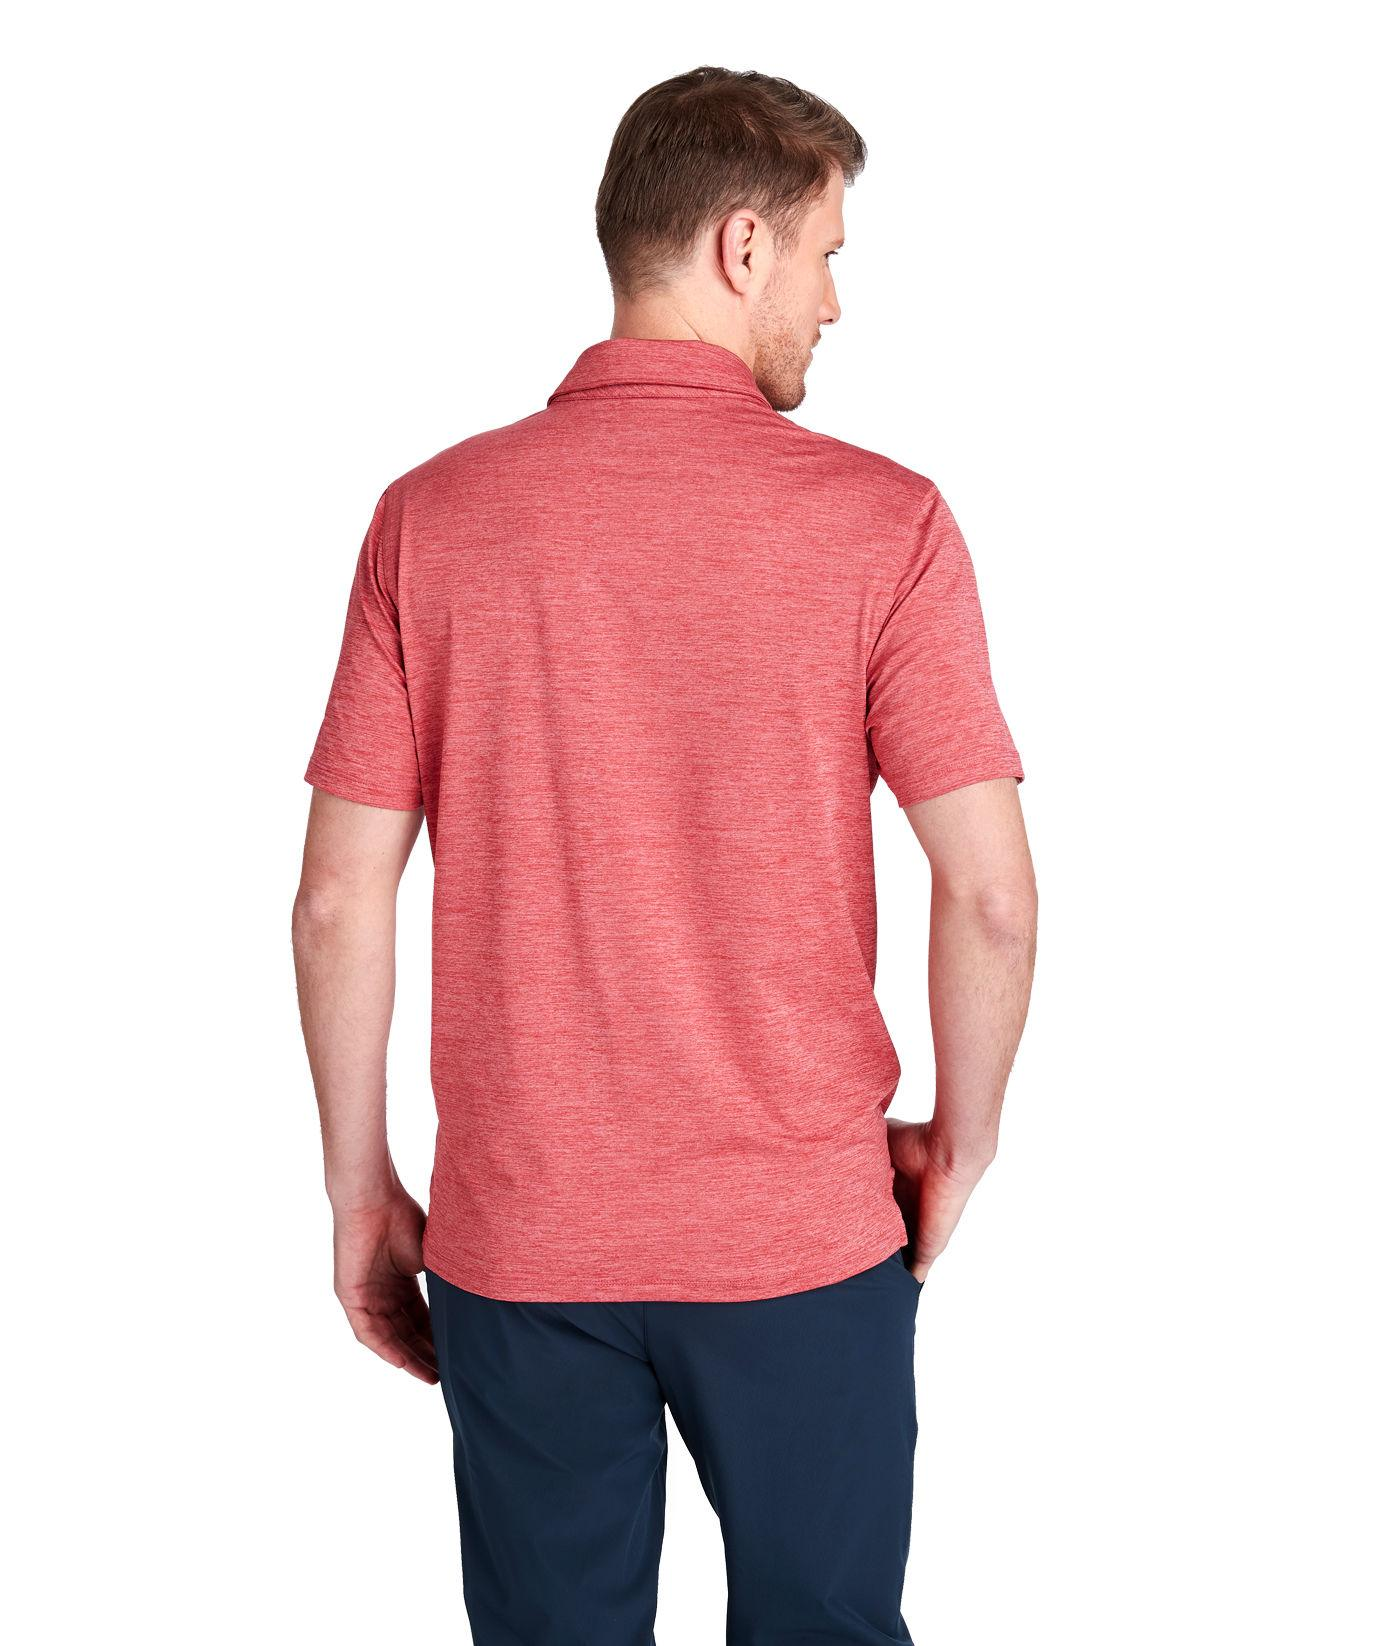 398b671df8 Lyst - Vineyard Vines St. Kitts Solid Bowline Fit Polo in Red for Men